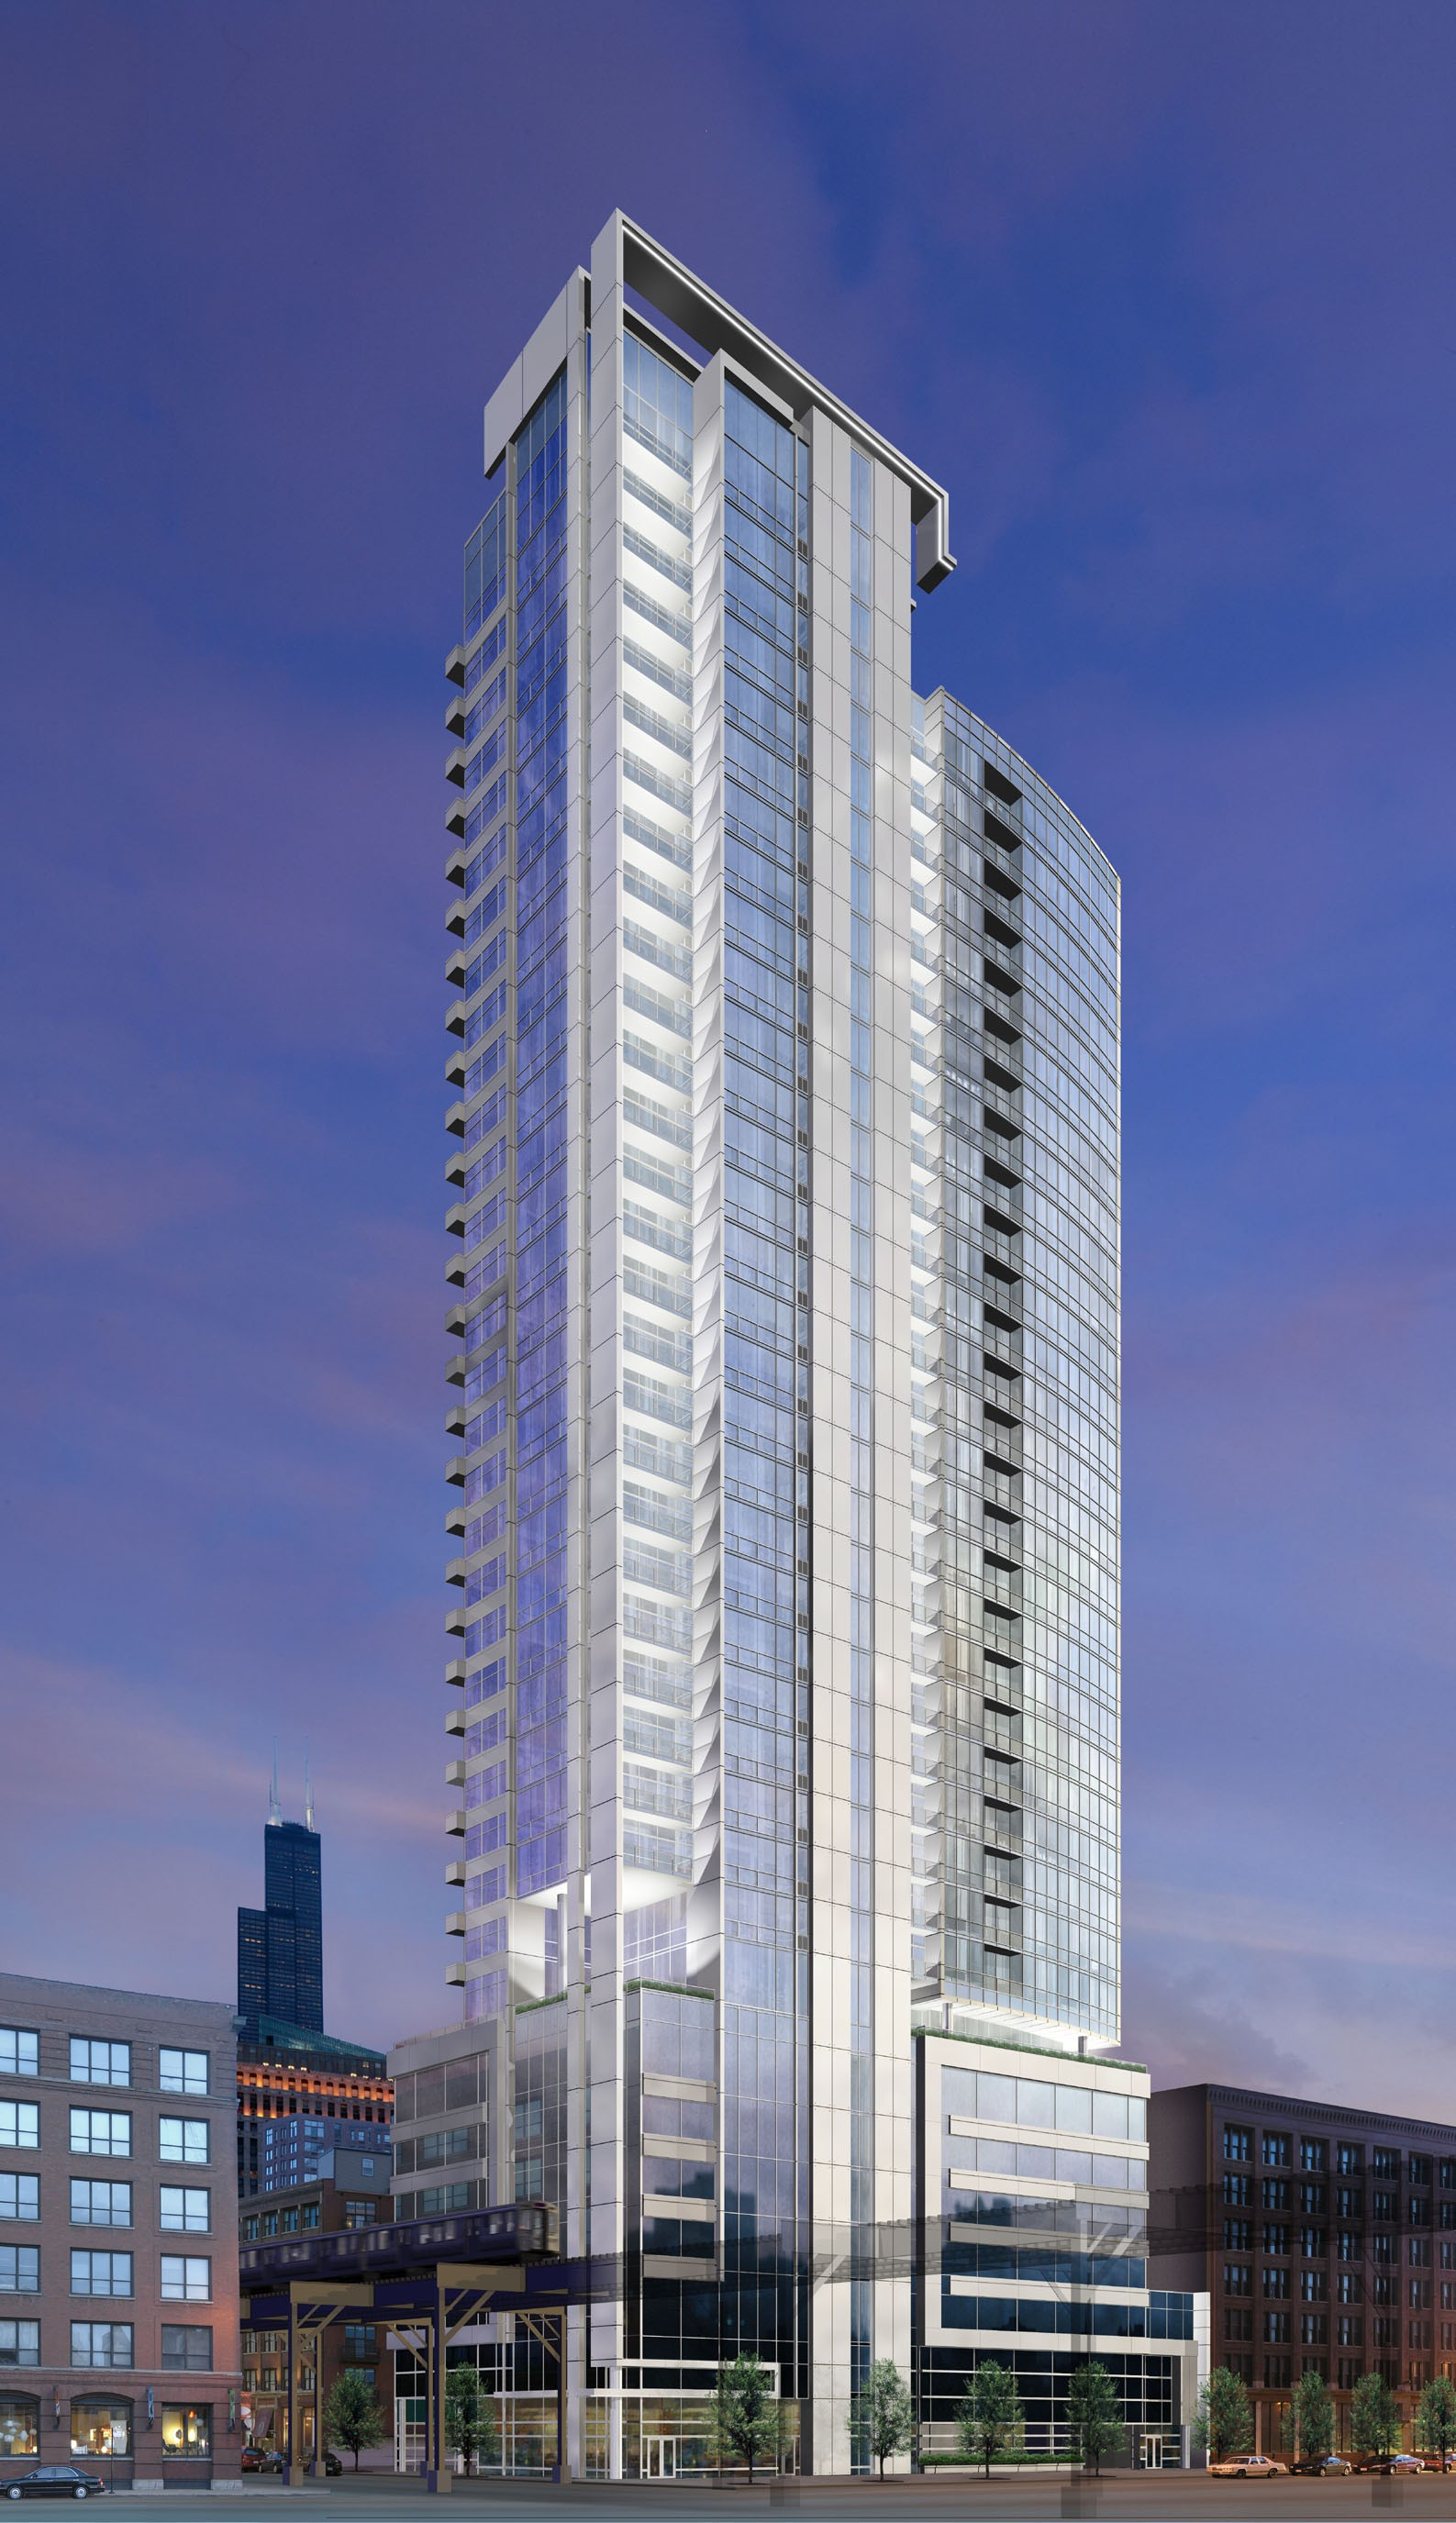 Buyers continue to snap up discounted condos at Silver Tower in River North